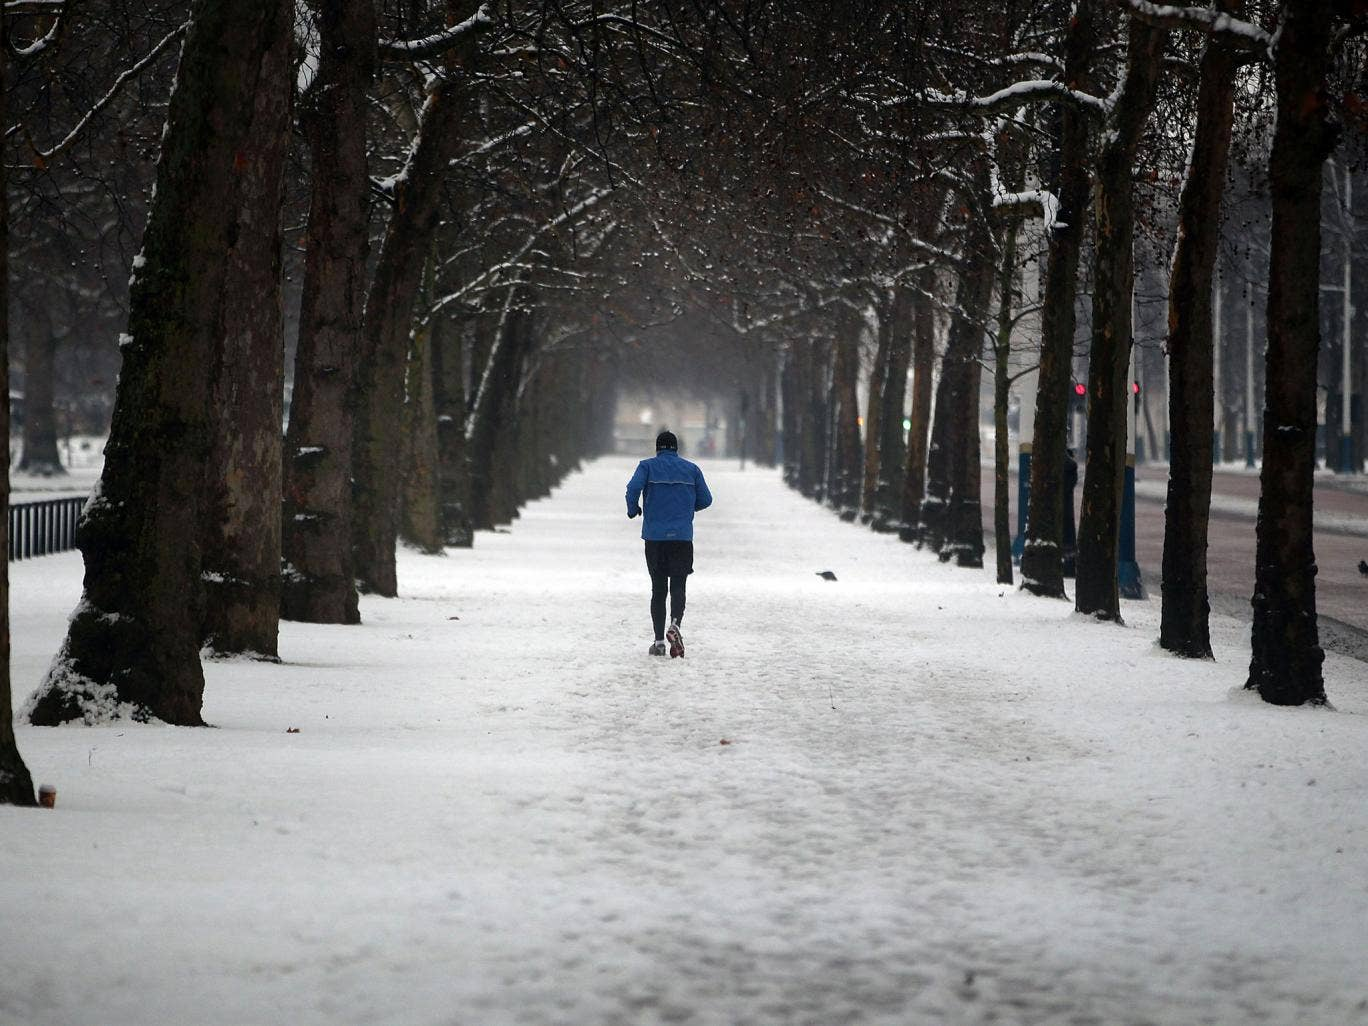 Britain will see the first low-level snow of the year next week as bitter arctic winds bring plummeting temperatures accompanied by rain, sleet and snow.